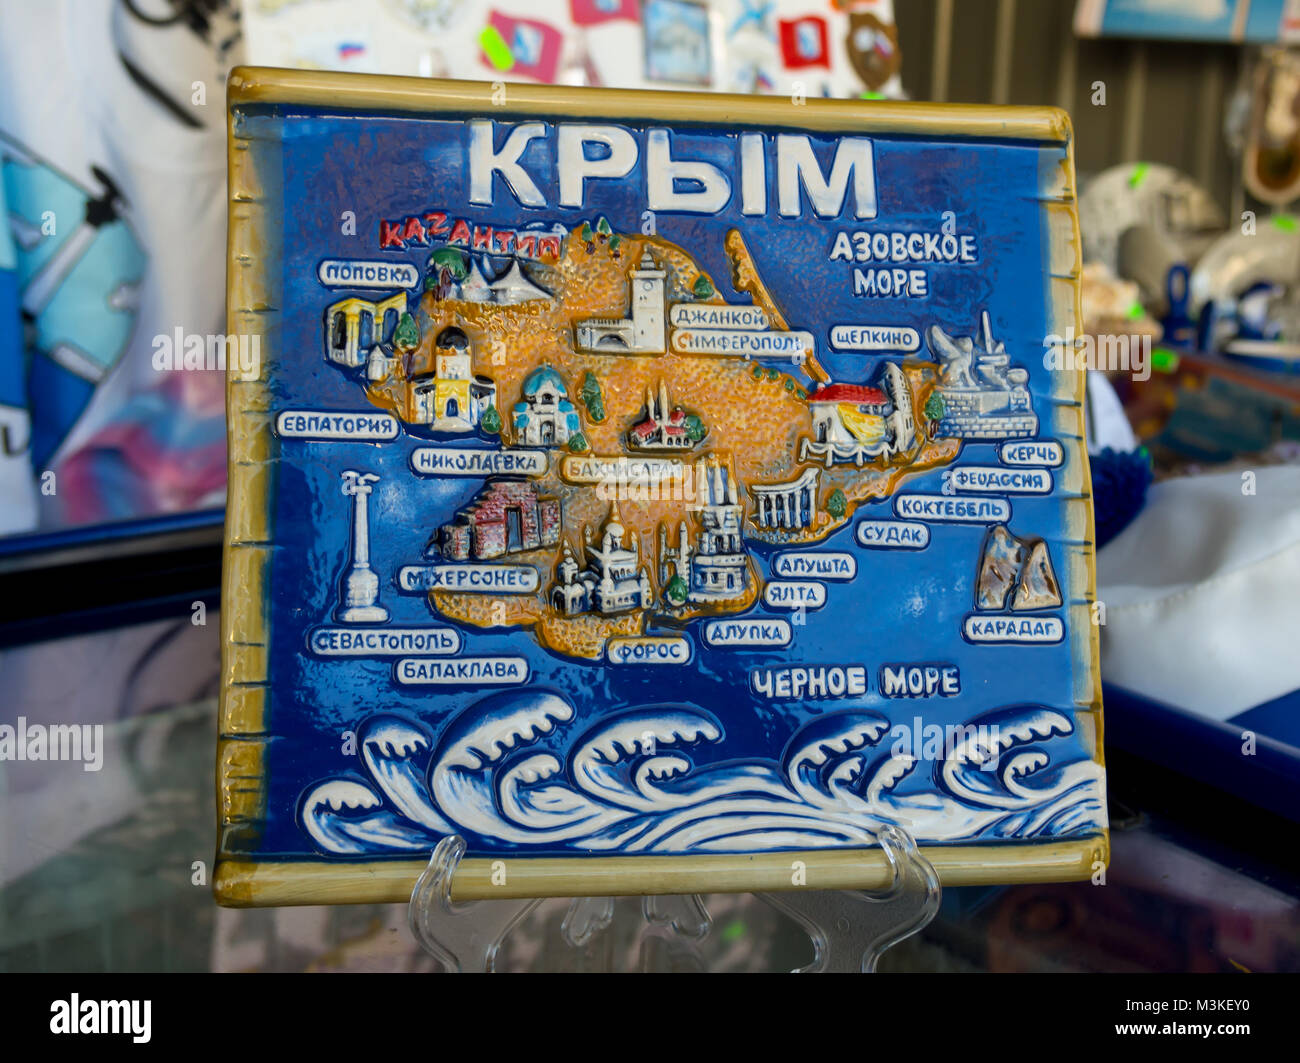 Sevastopol, Russia - November 14, 2015: Souvenir plate mural with the image of the Crimean peninsula Stock Photo